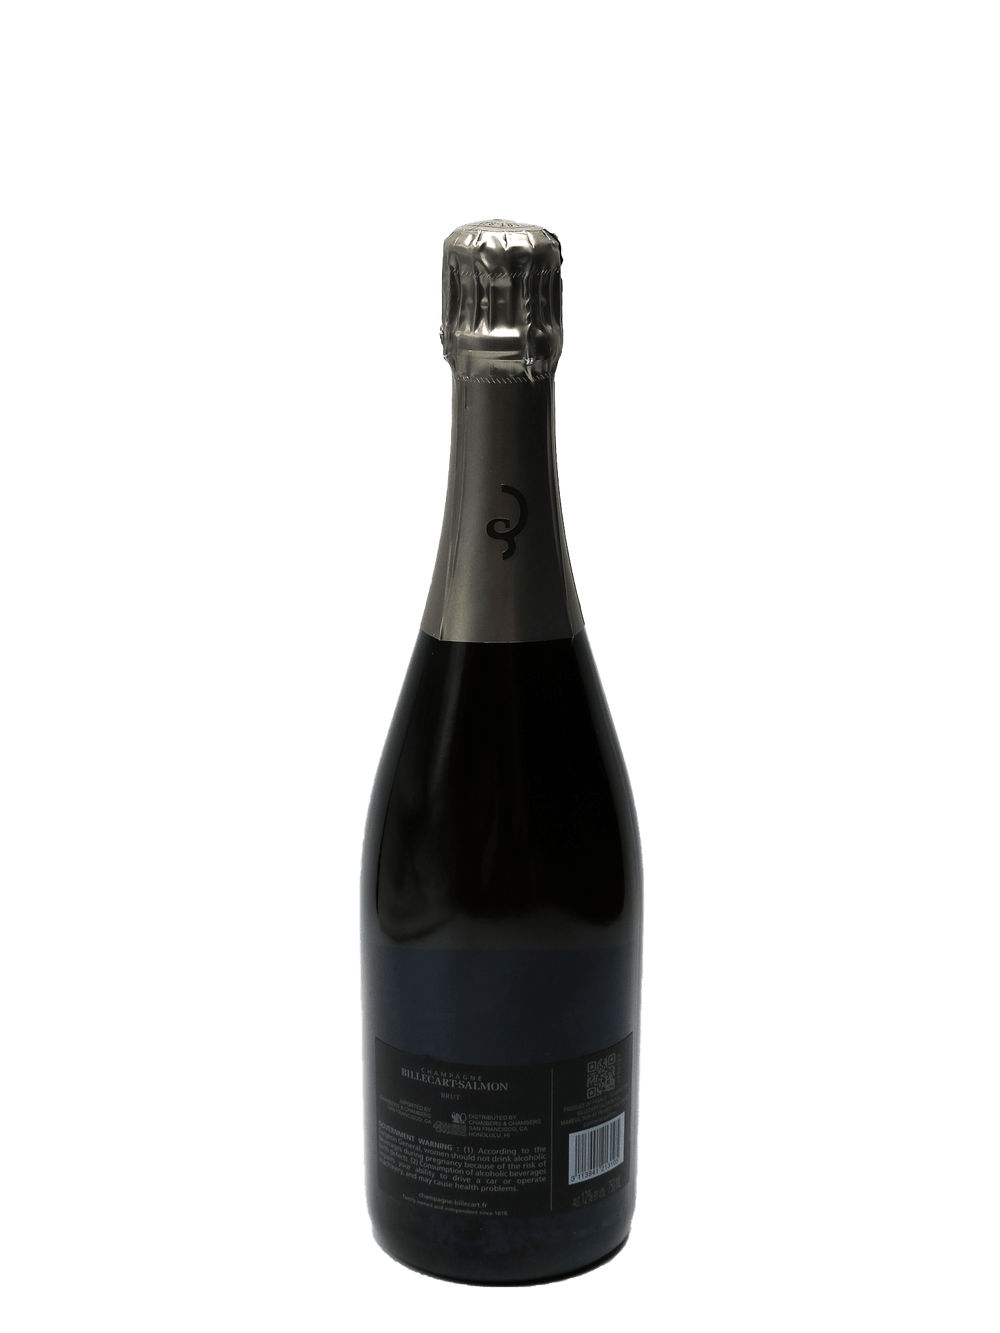 NV Billecart-Salmon Brut Reserve